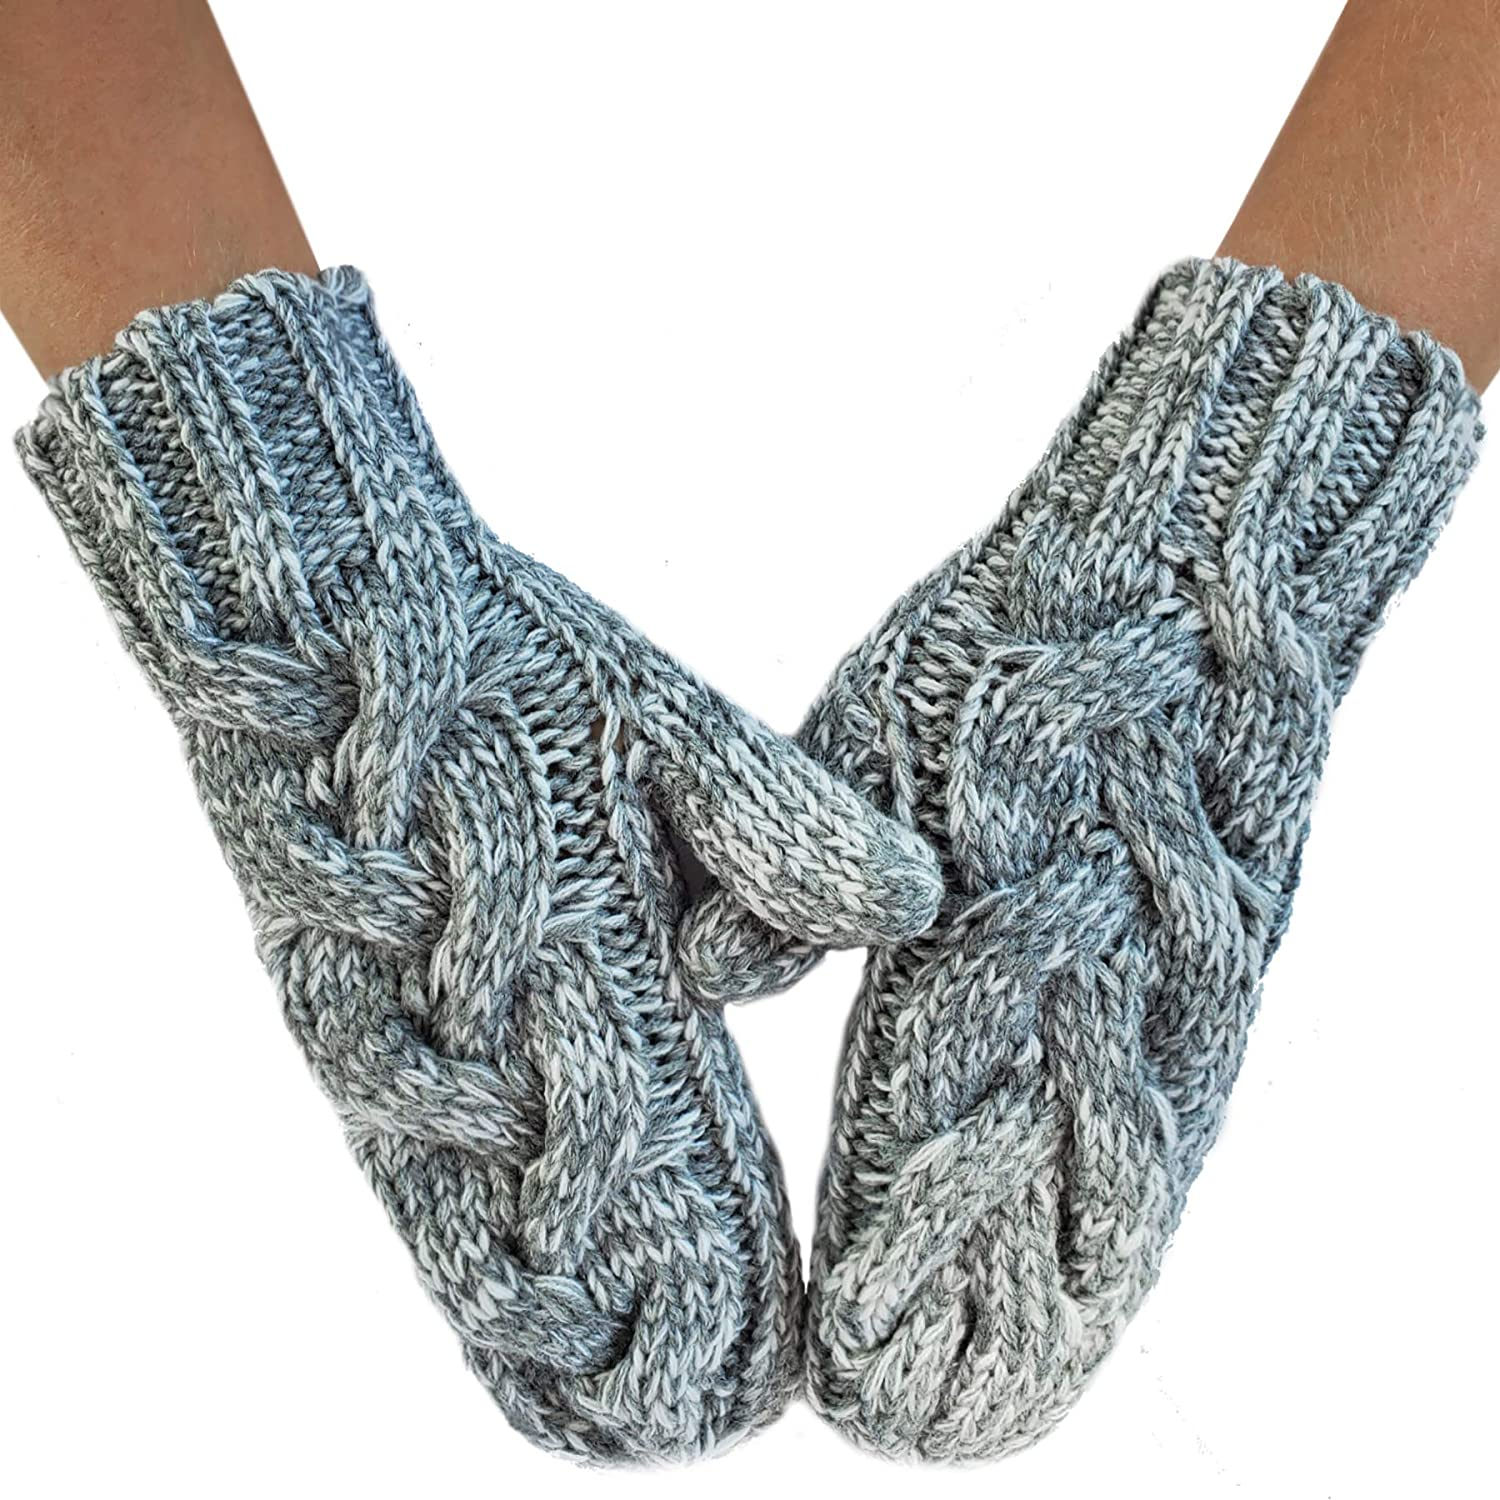 Mittens for Women Soft and Cozy for Cold Weather Wool Knit Womans Winter Mittens Warm Gloves